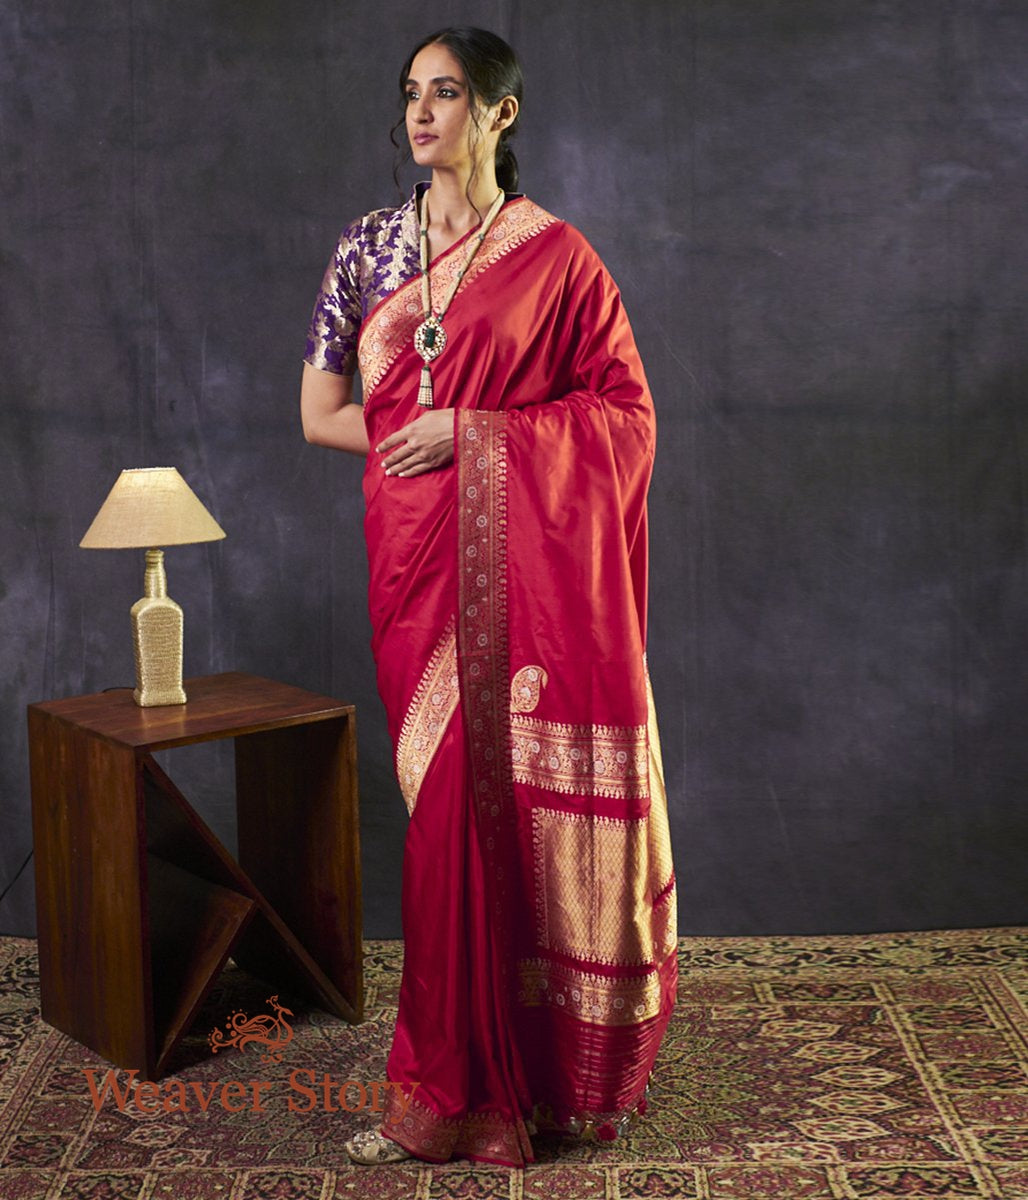 Handwoven Red Plain Saree with Gold and Silver Meenakri Border